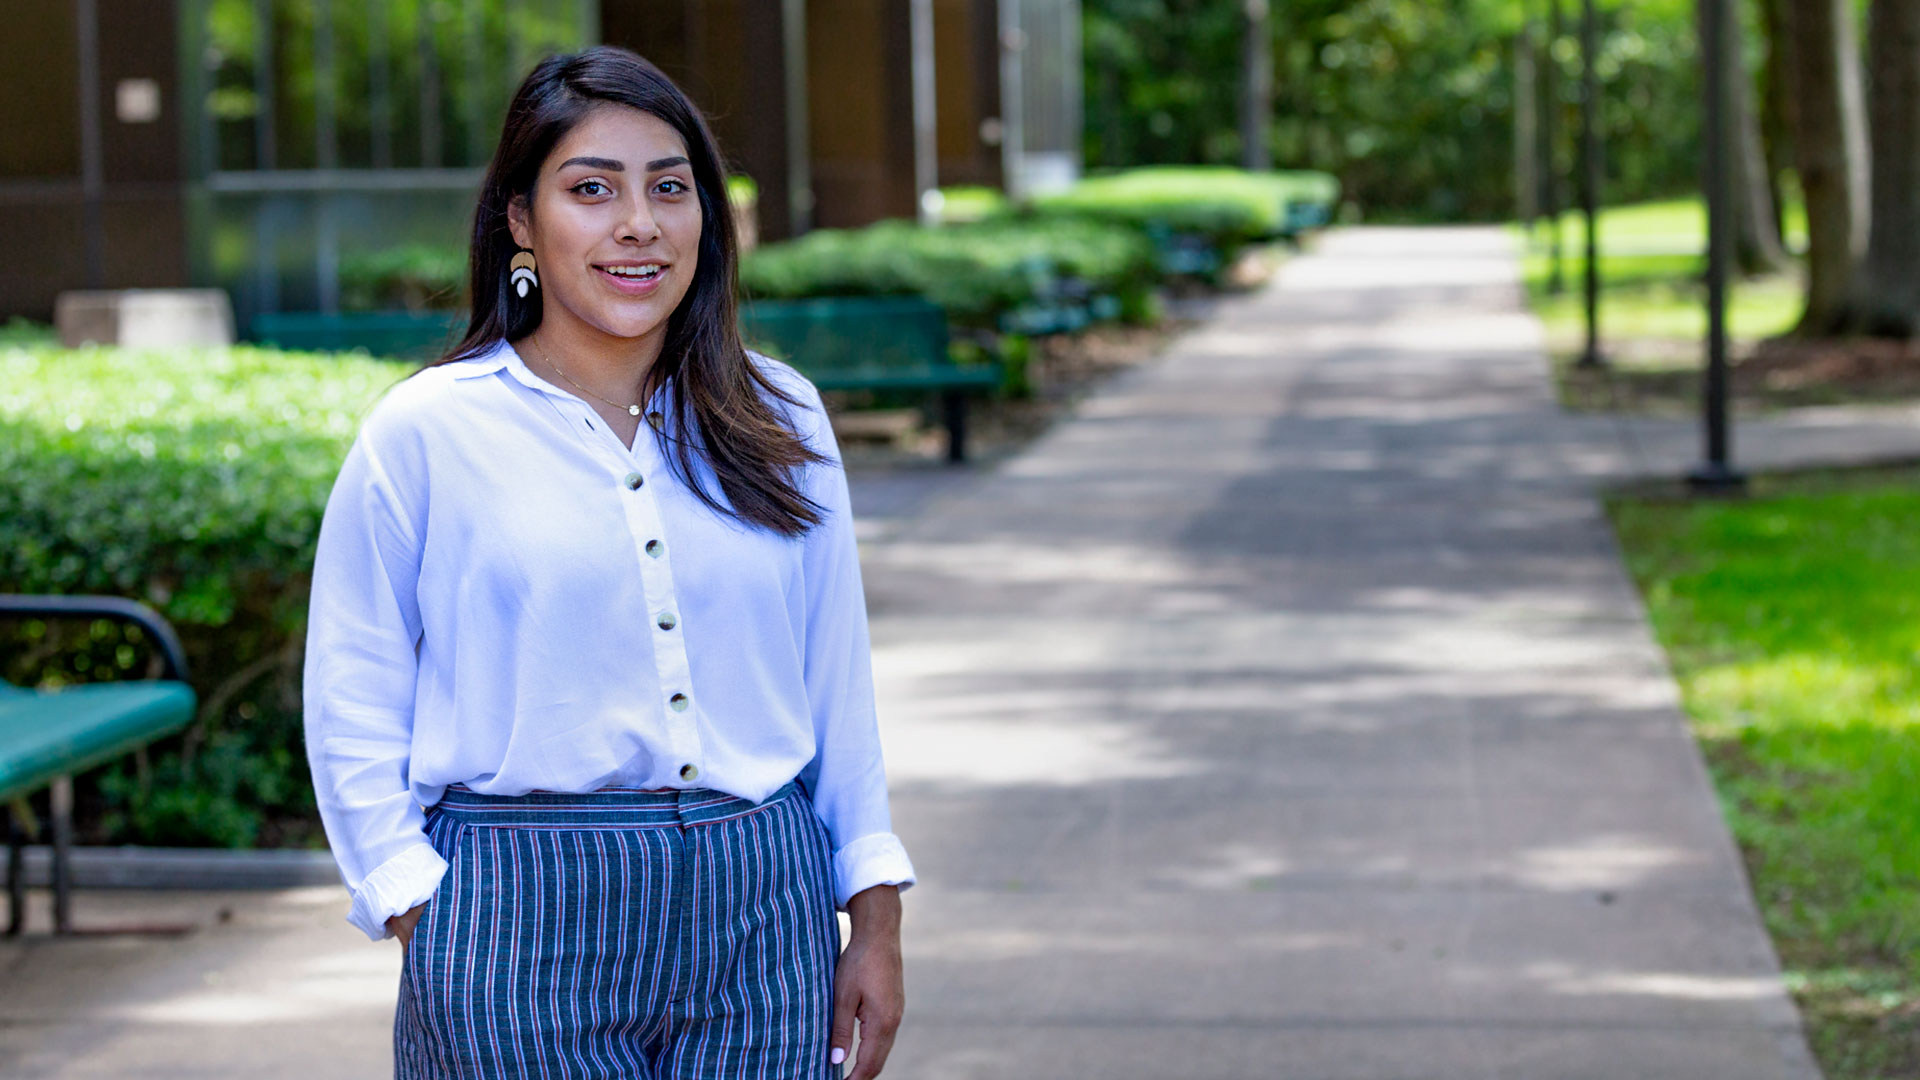 UHCL alumna is Alvin ISD Paraprofessional of the Year